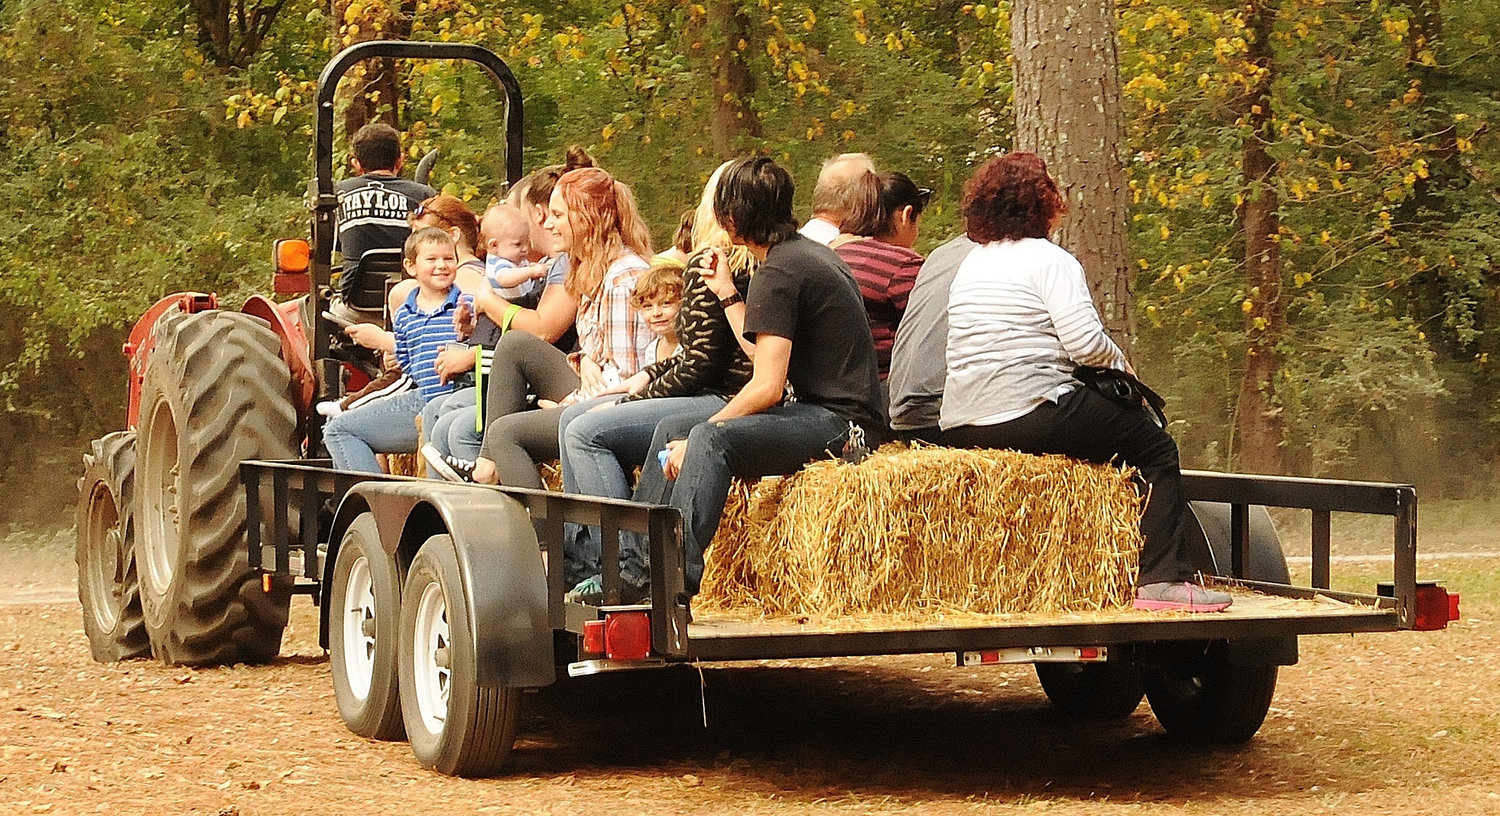 Children and adults alike enjoy the hayride at a previous Euharlee Covered Bridge Fall Festival at Frankie Harris Park.